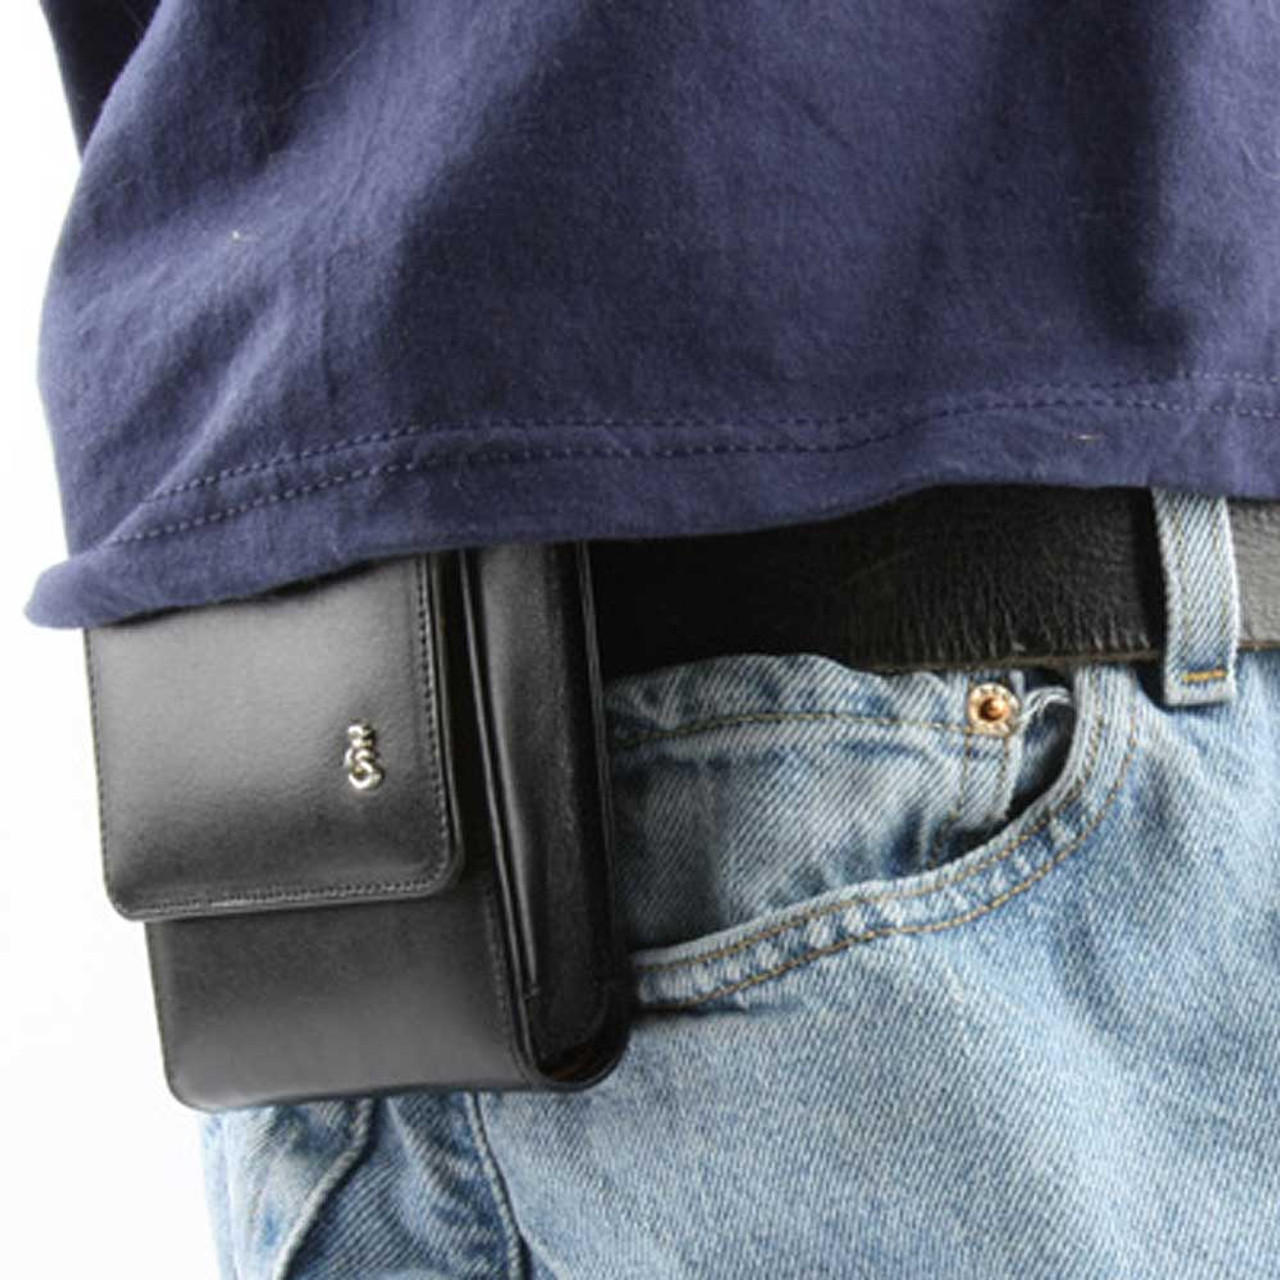 Sig P938 Sneaky Pete Holster (Belt Clip)